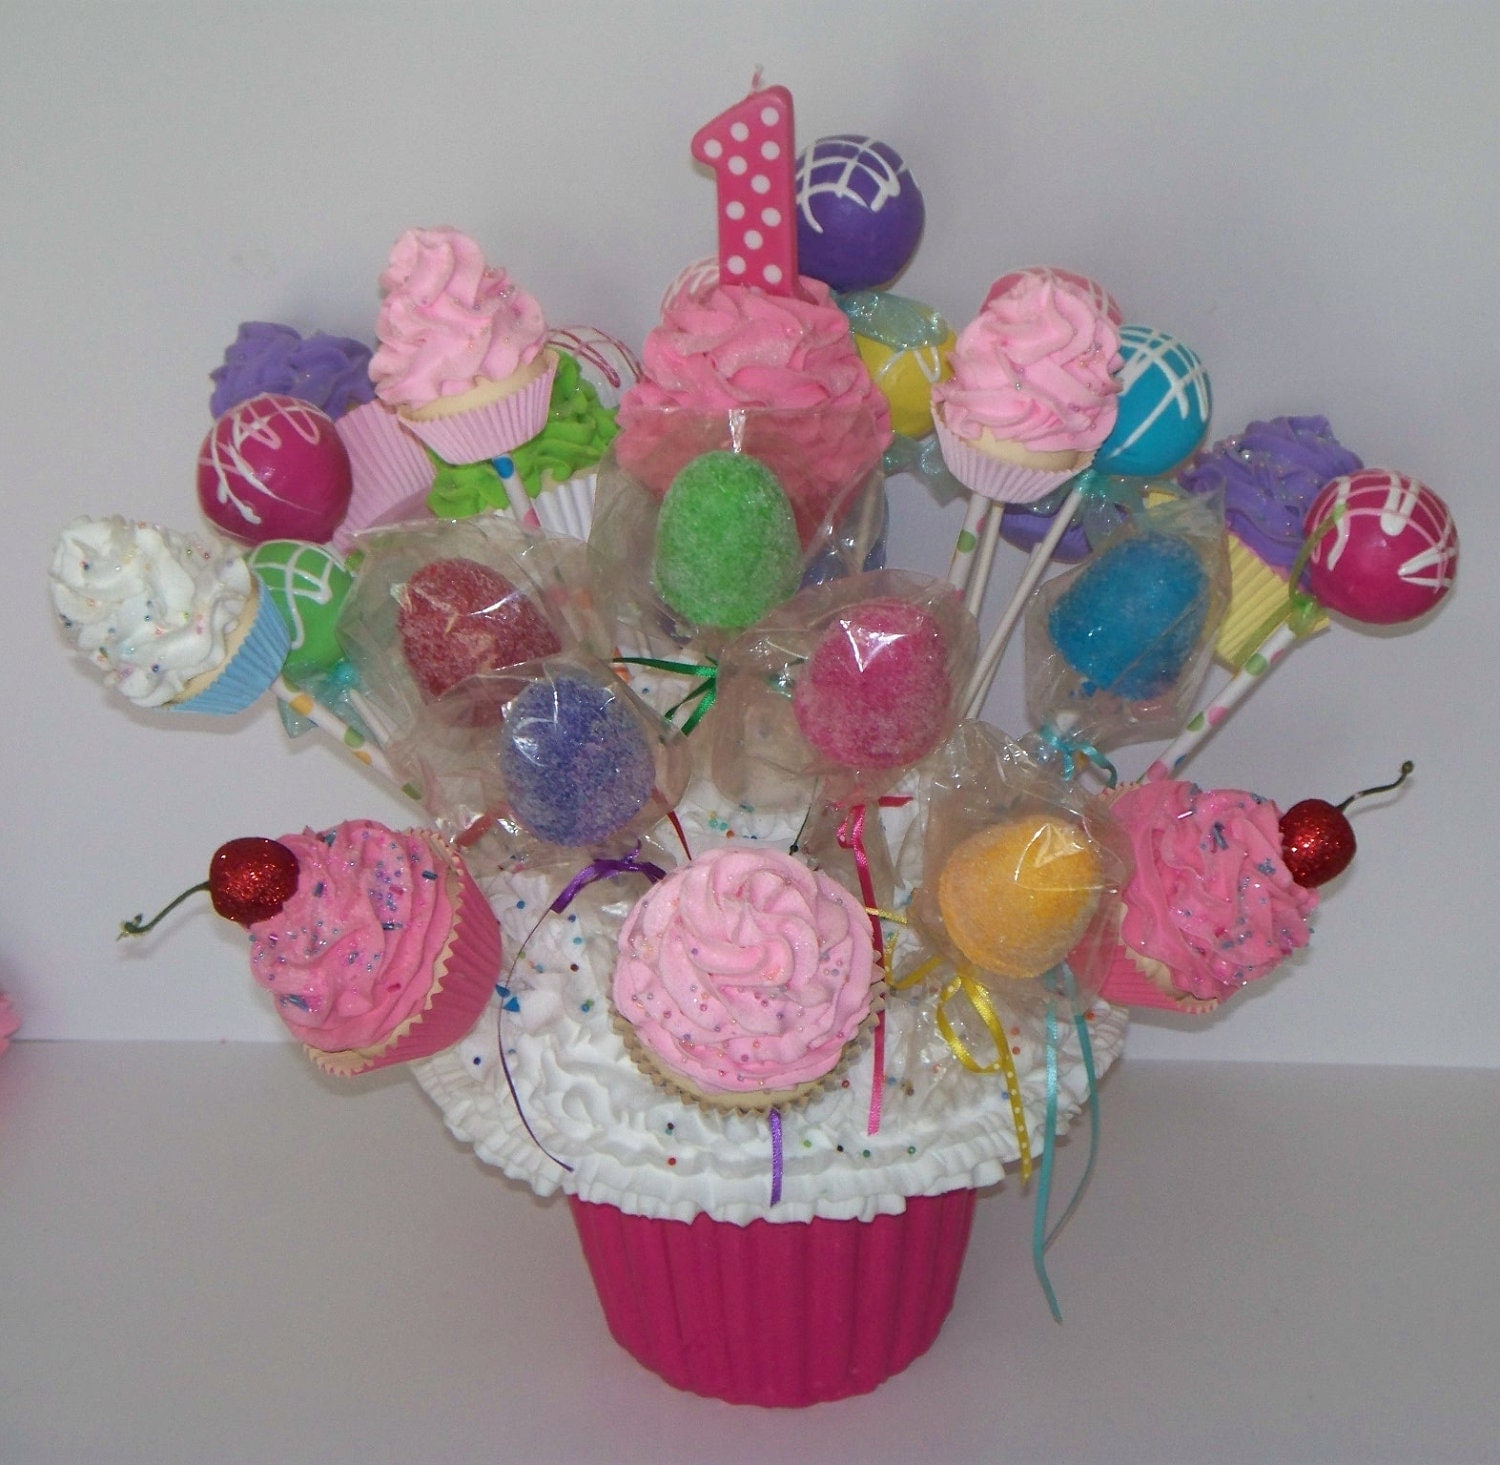 A Cupcake Themed 1st Birthday Party With Paisley And Polka: Giant Fake Cupcake First Birthday By FakeCupcakeCreations